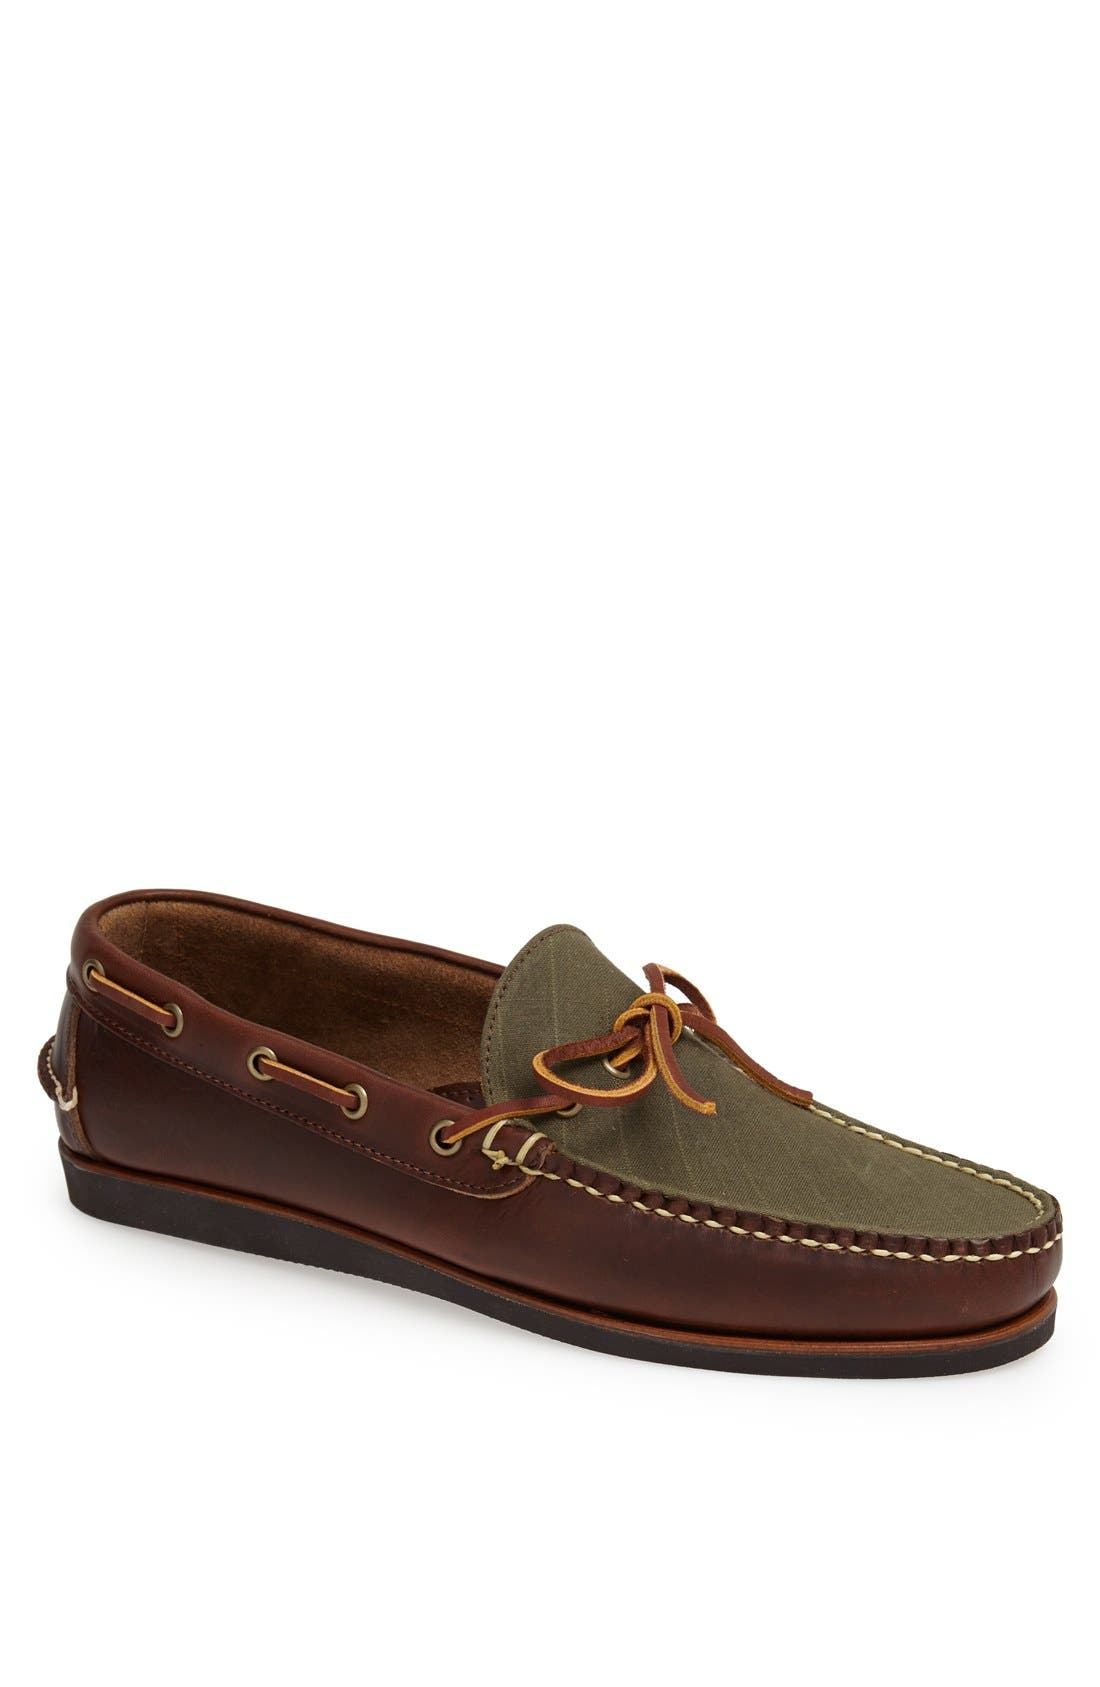 Alternate Image 1 Selected - Eastland Made in Maine 'Yarmouth USA' Boat Shoe